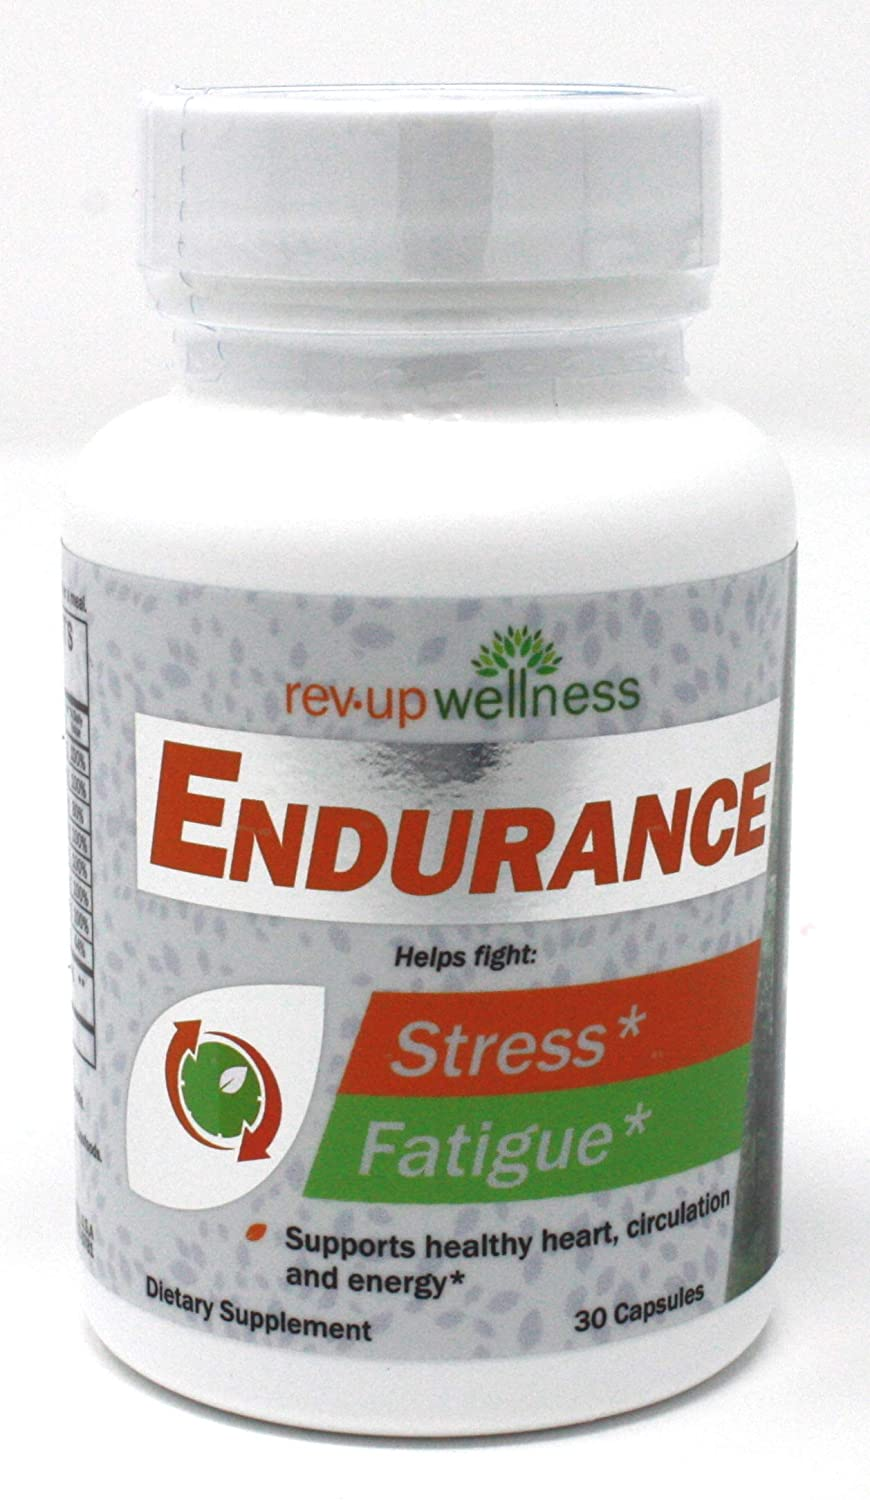 Rev Up Wellness Endurance, 1.6 Ounce, Pack of 30 Tablets